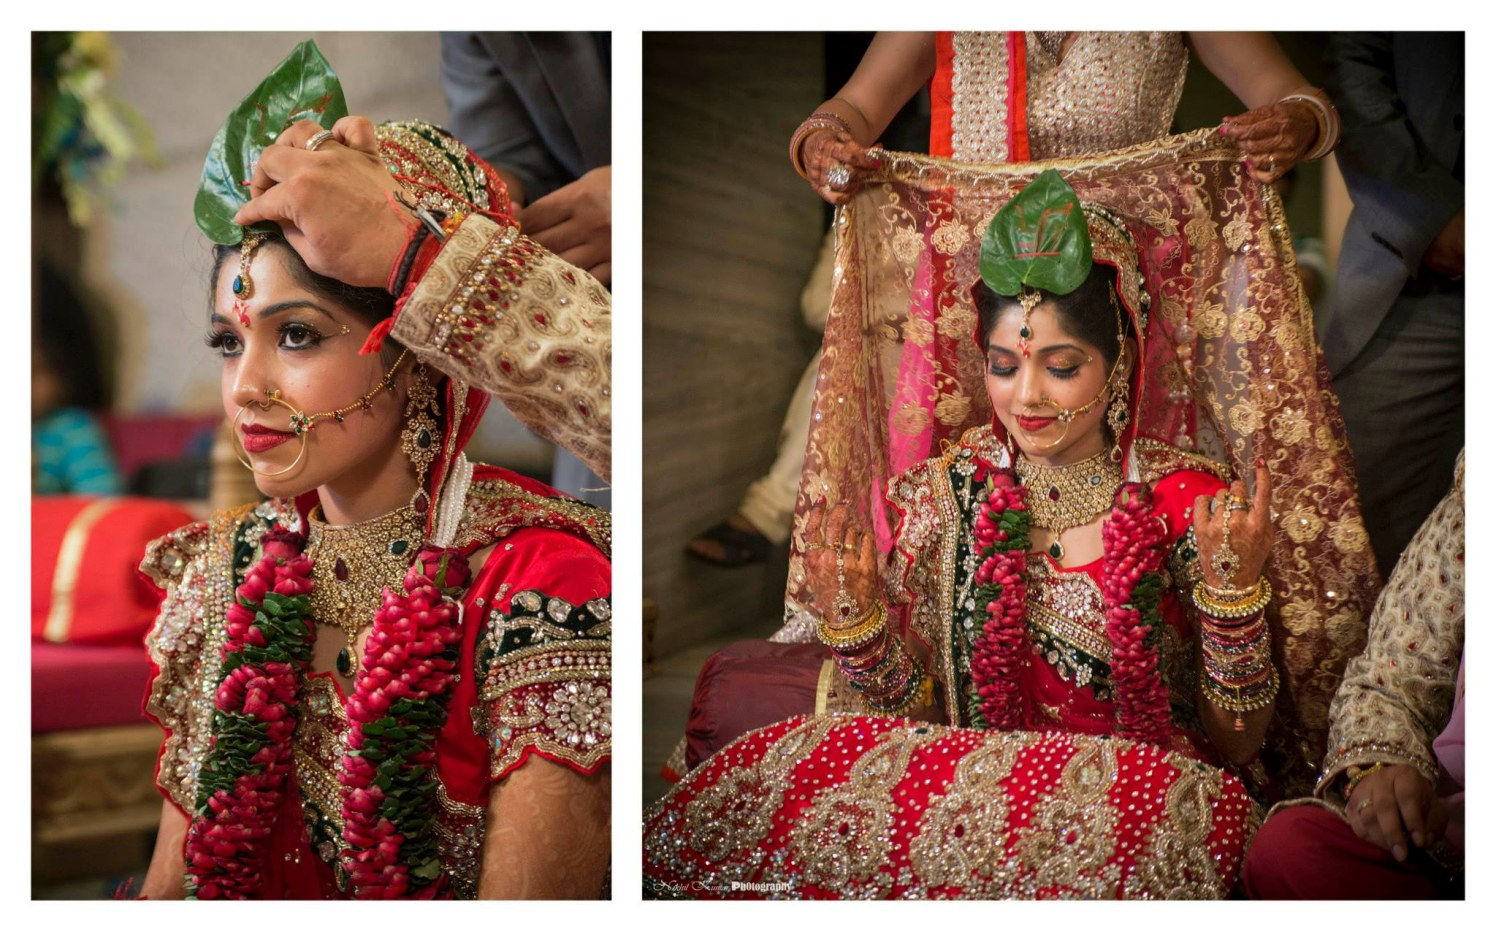 Wedding Rituals In Red And Green Themed Jewellery And Lehenga by Nikhil Kumar Wedding-photography Bridal-jewellery-and-accessories Bridal-makeup | Weddings Photos & Ideas